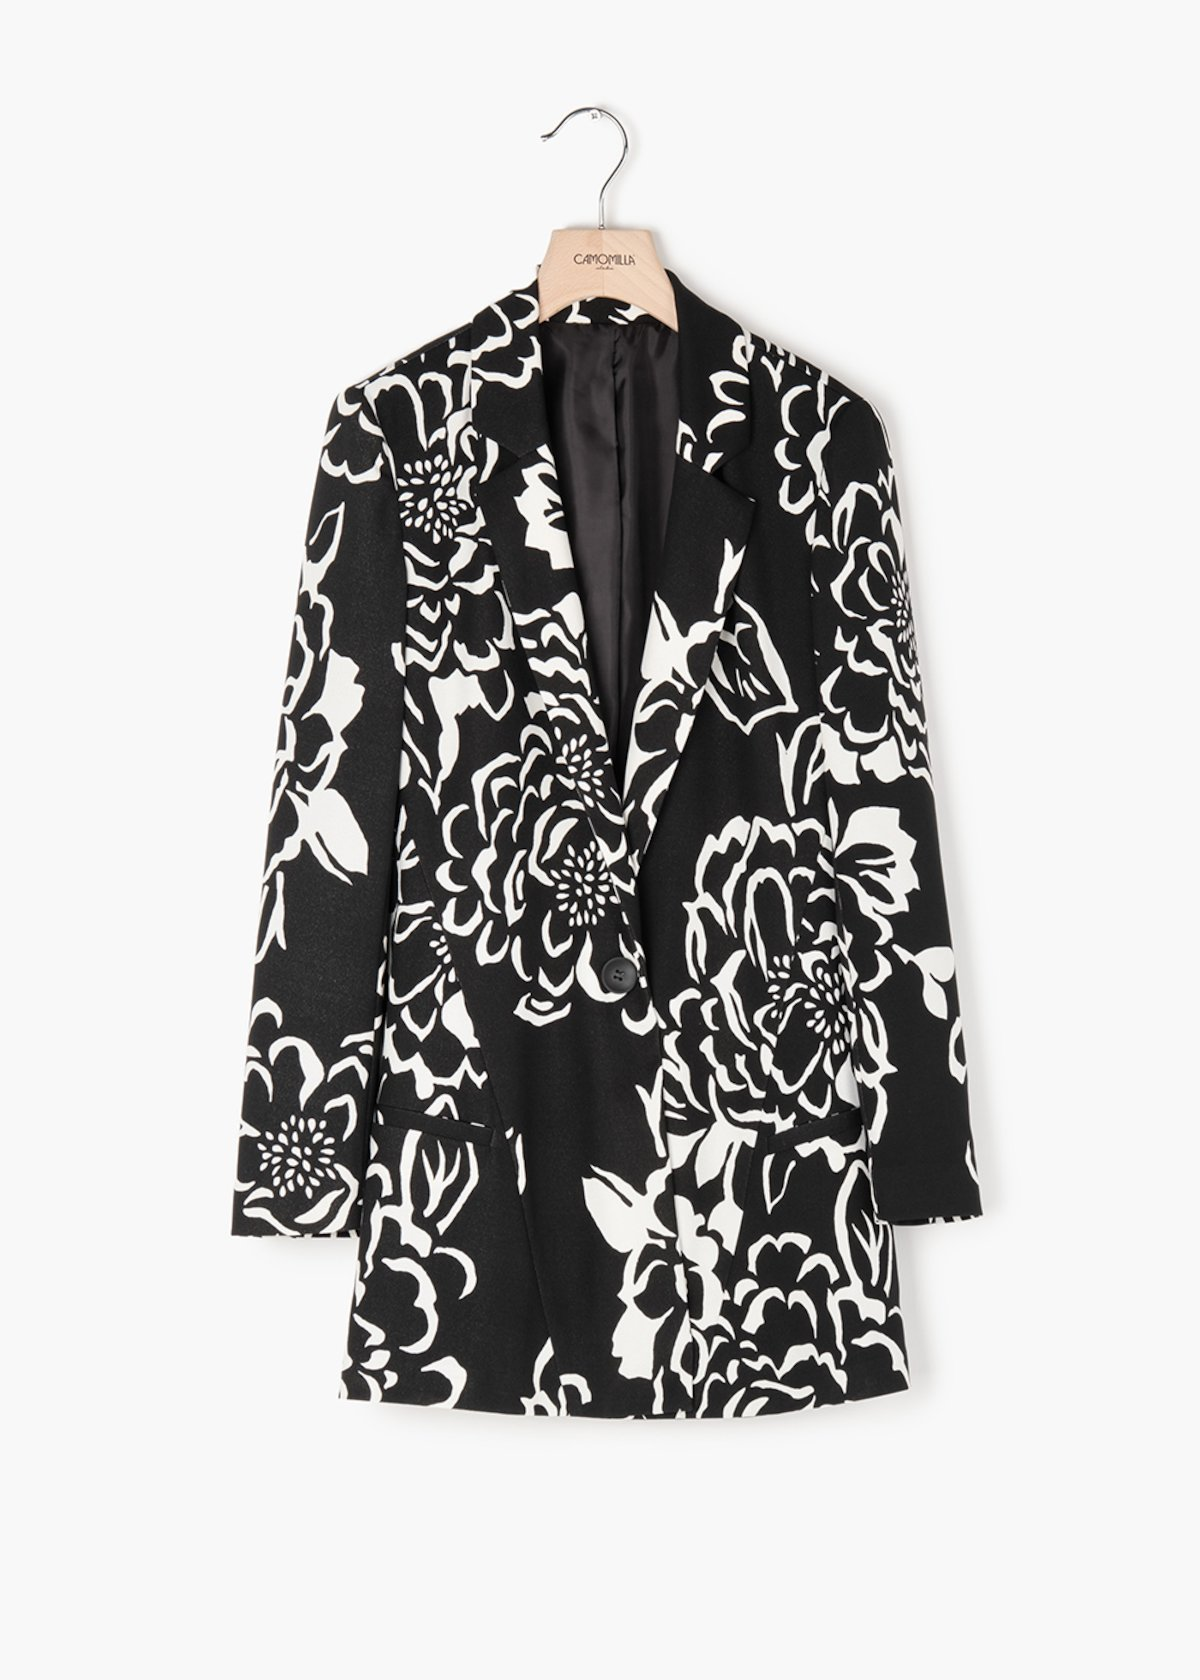 Glady jacket in floral print crêpe - Black / White Fantasia - Woman